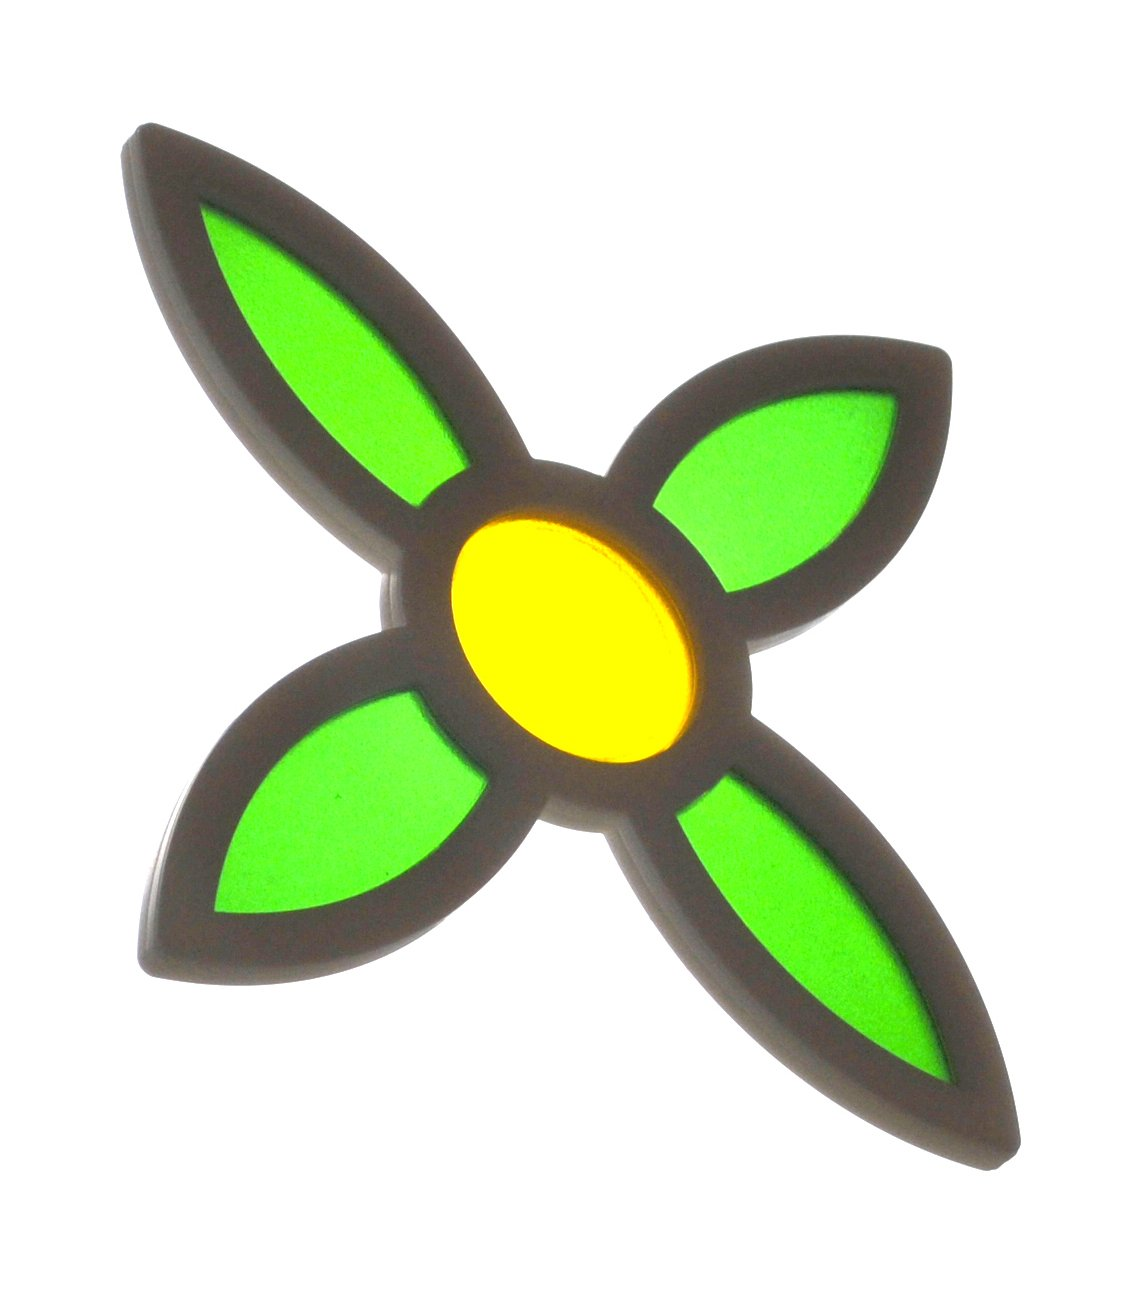 Decapanel 4-leaf window display consisting of a raised 3D black frame with a yellow translucent bud and 4 green translucent leaves. Decapanels Ltd